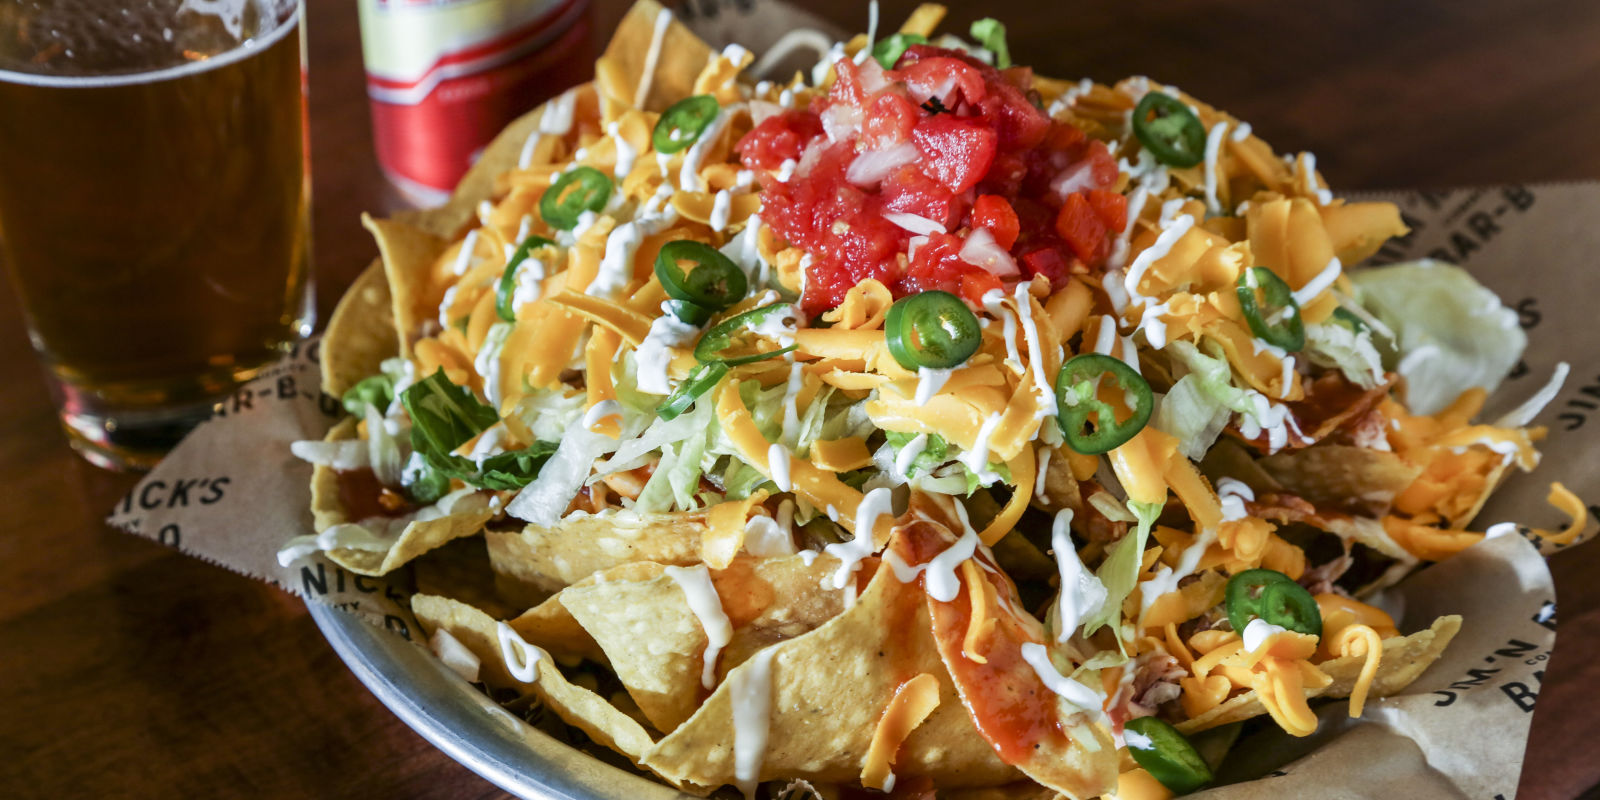 Best Nachos in America - Where to Get Nachos in Every State